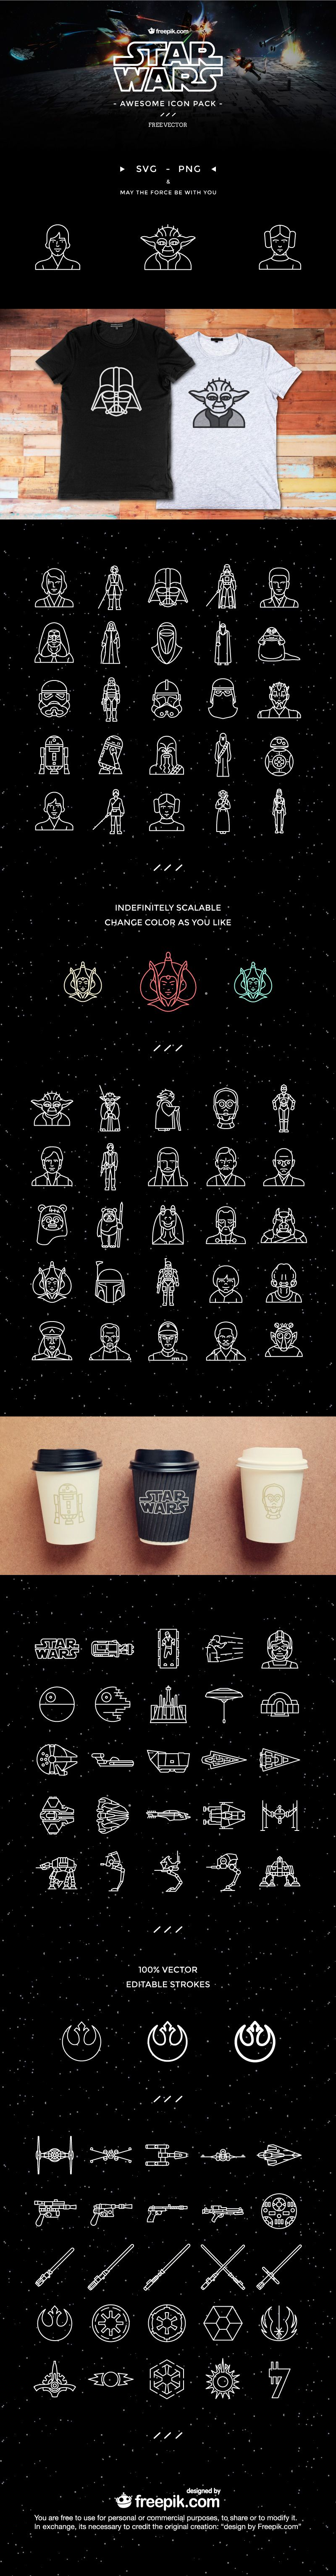 Google themes star wars - An Amazing Pack Of 100 Free Star Wars Icons Designed Exclusively By Freepik All Your